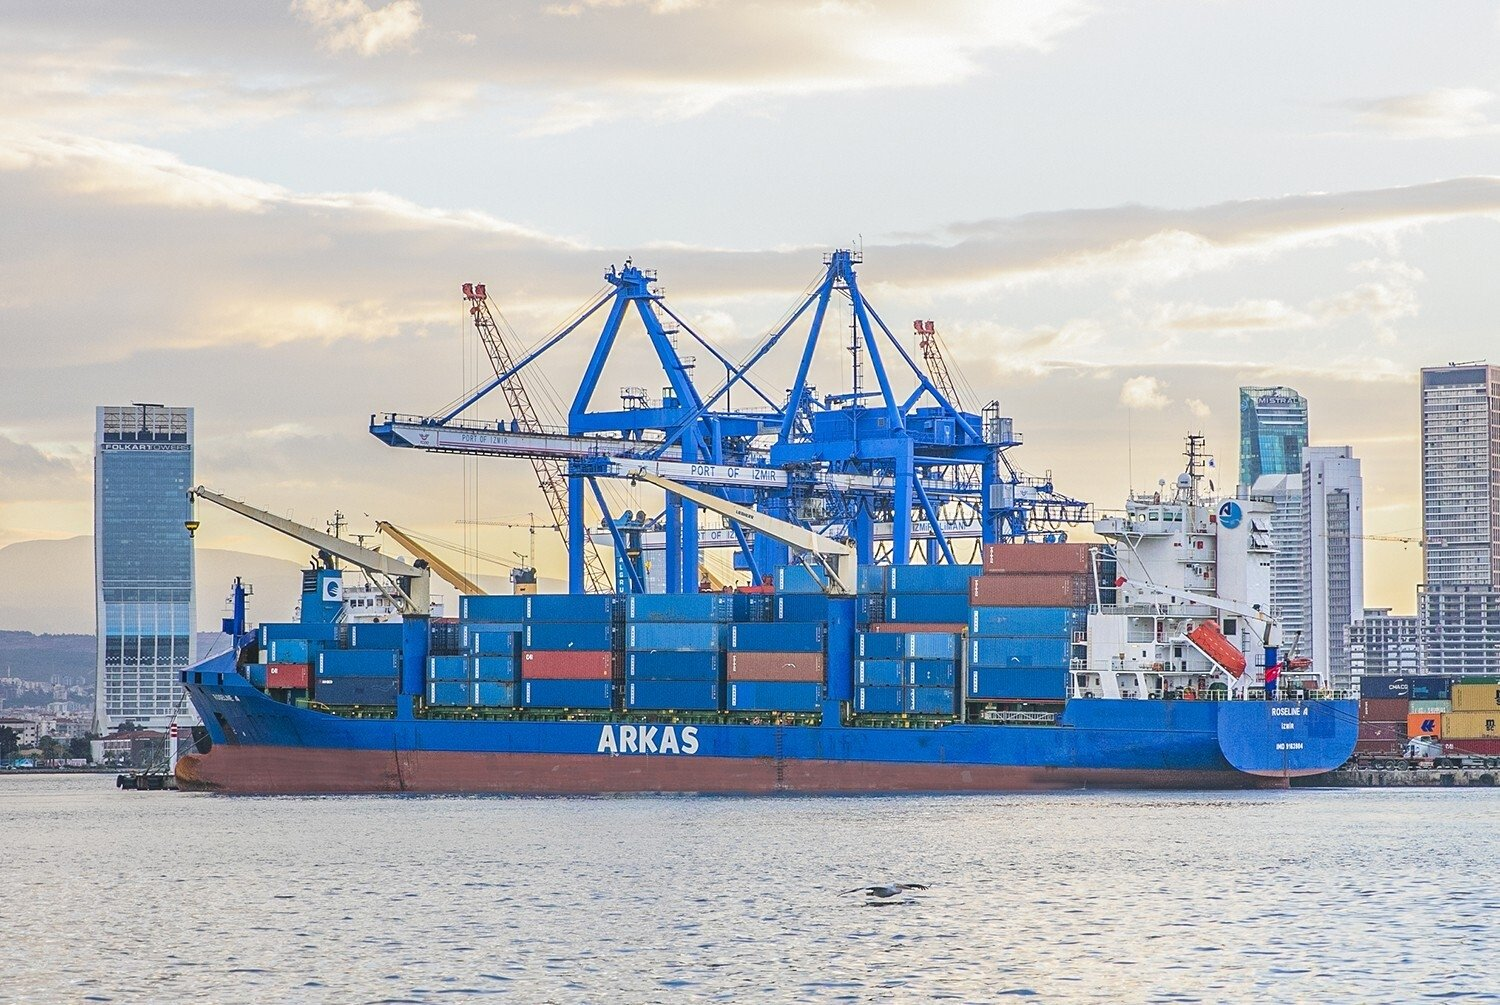 A container ship docks at the Port of Izmir in western Turkey, Dec. 10, 2020. (IHA Photo)